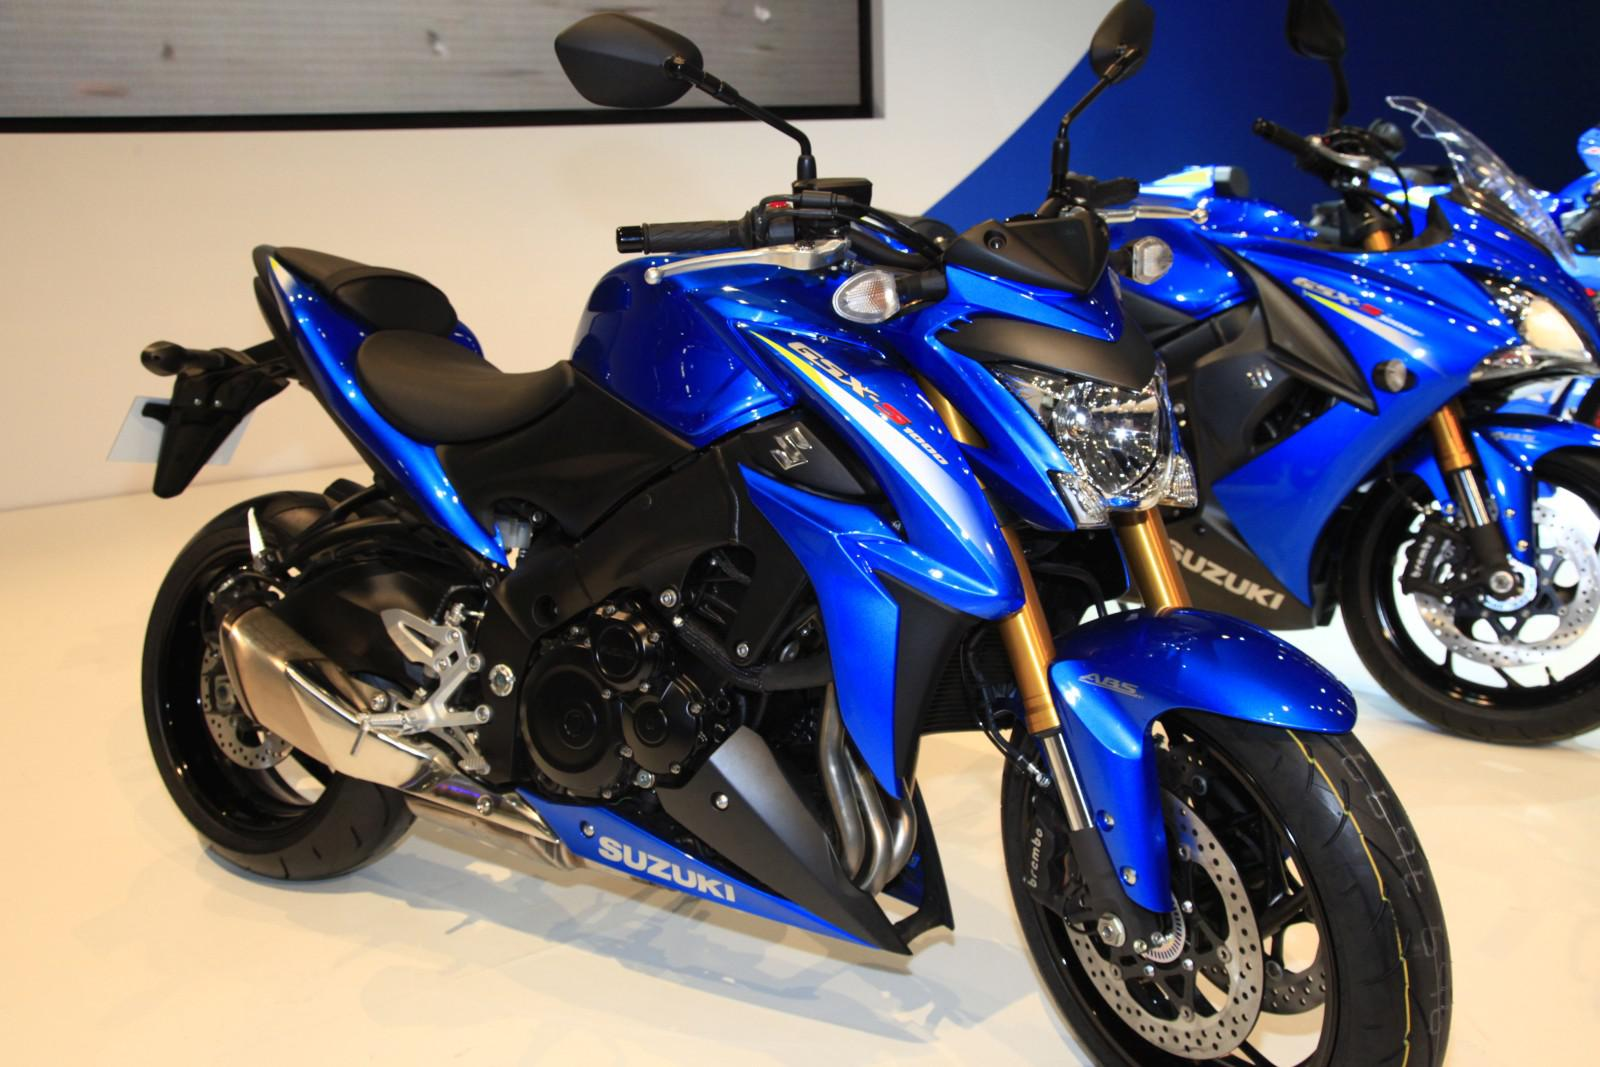 suzuki gsx s1000 2015. Black Bedroom Furniture Sets. Home Design Ideas